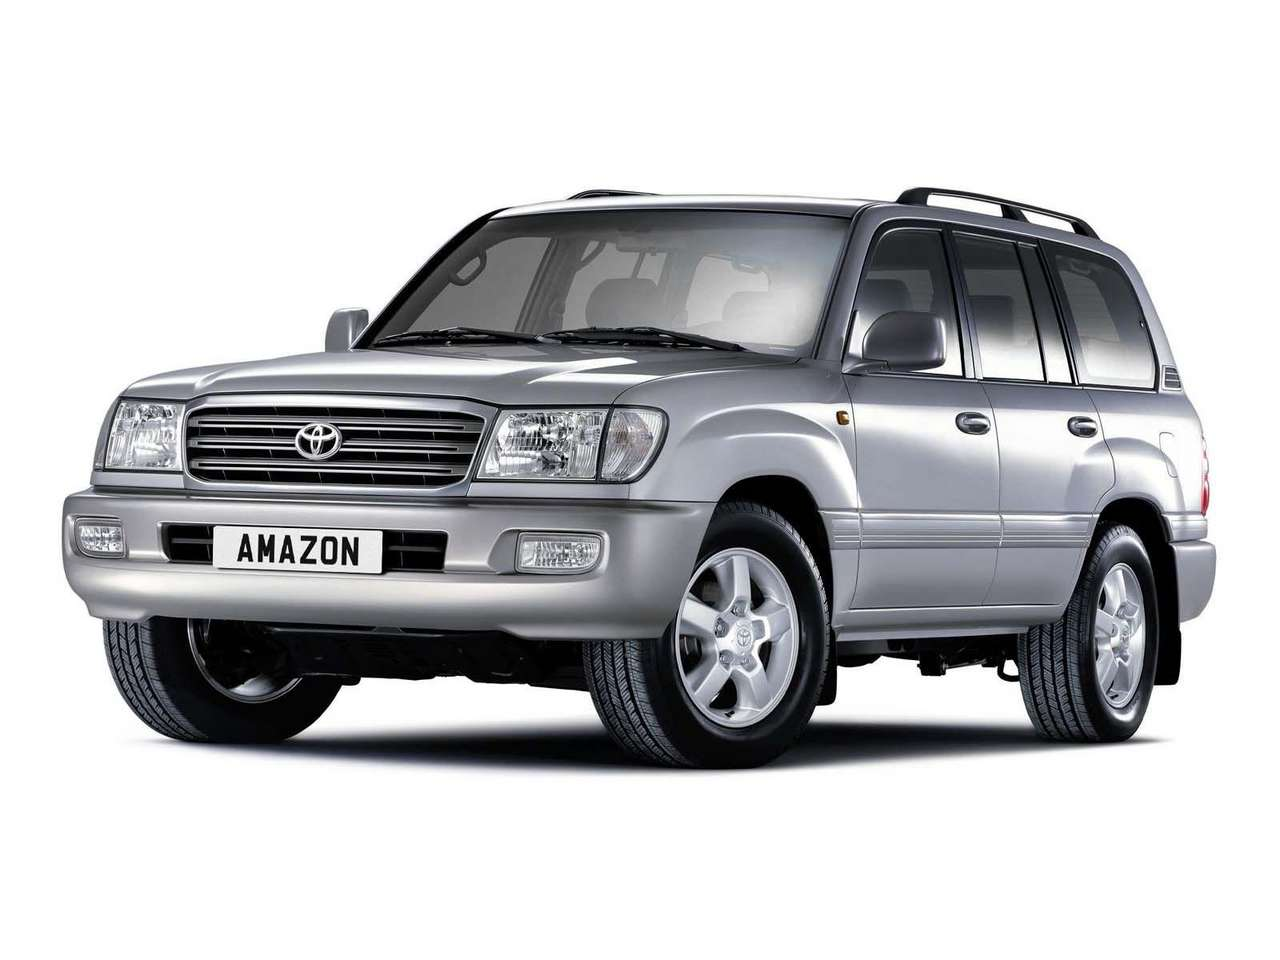 2003 Toyota Land Cruiser Amazon | Toyota Autos Spain